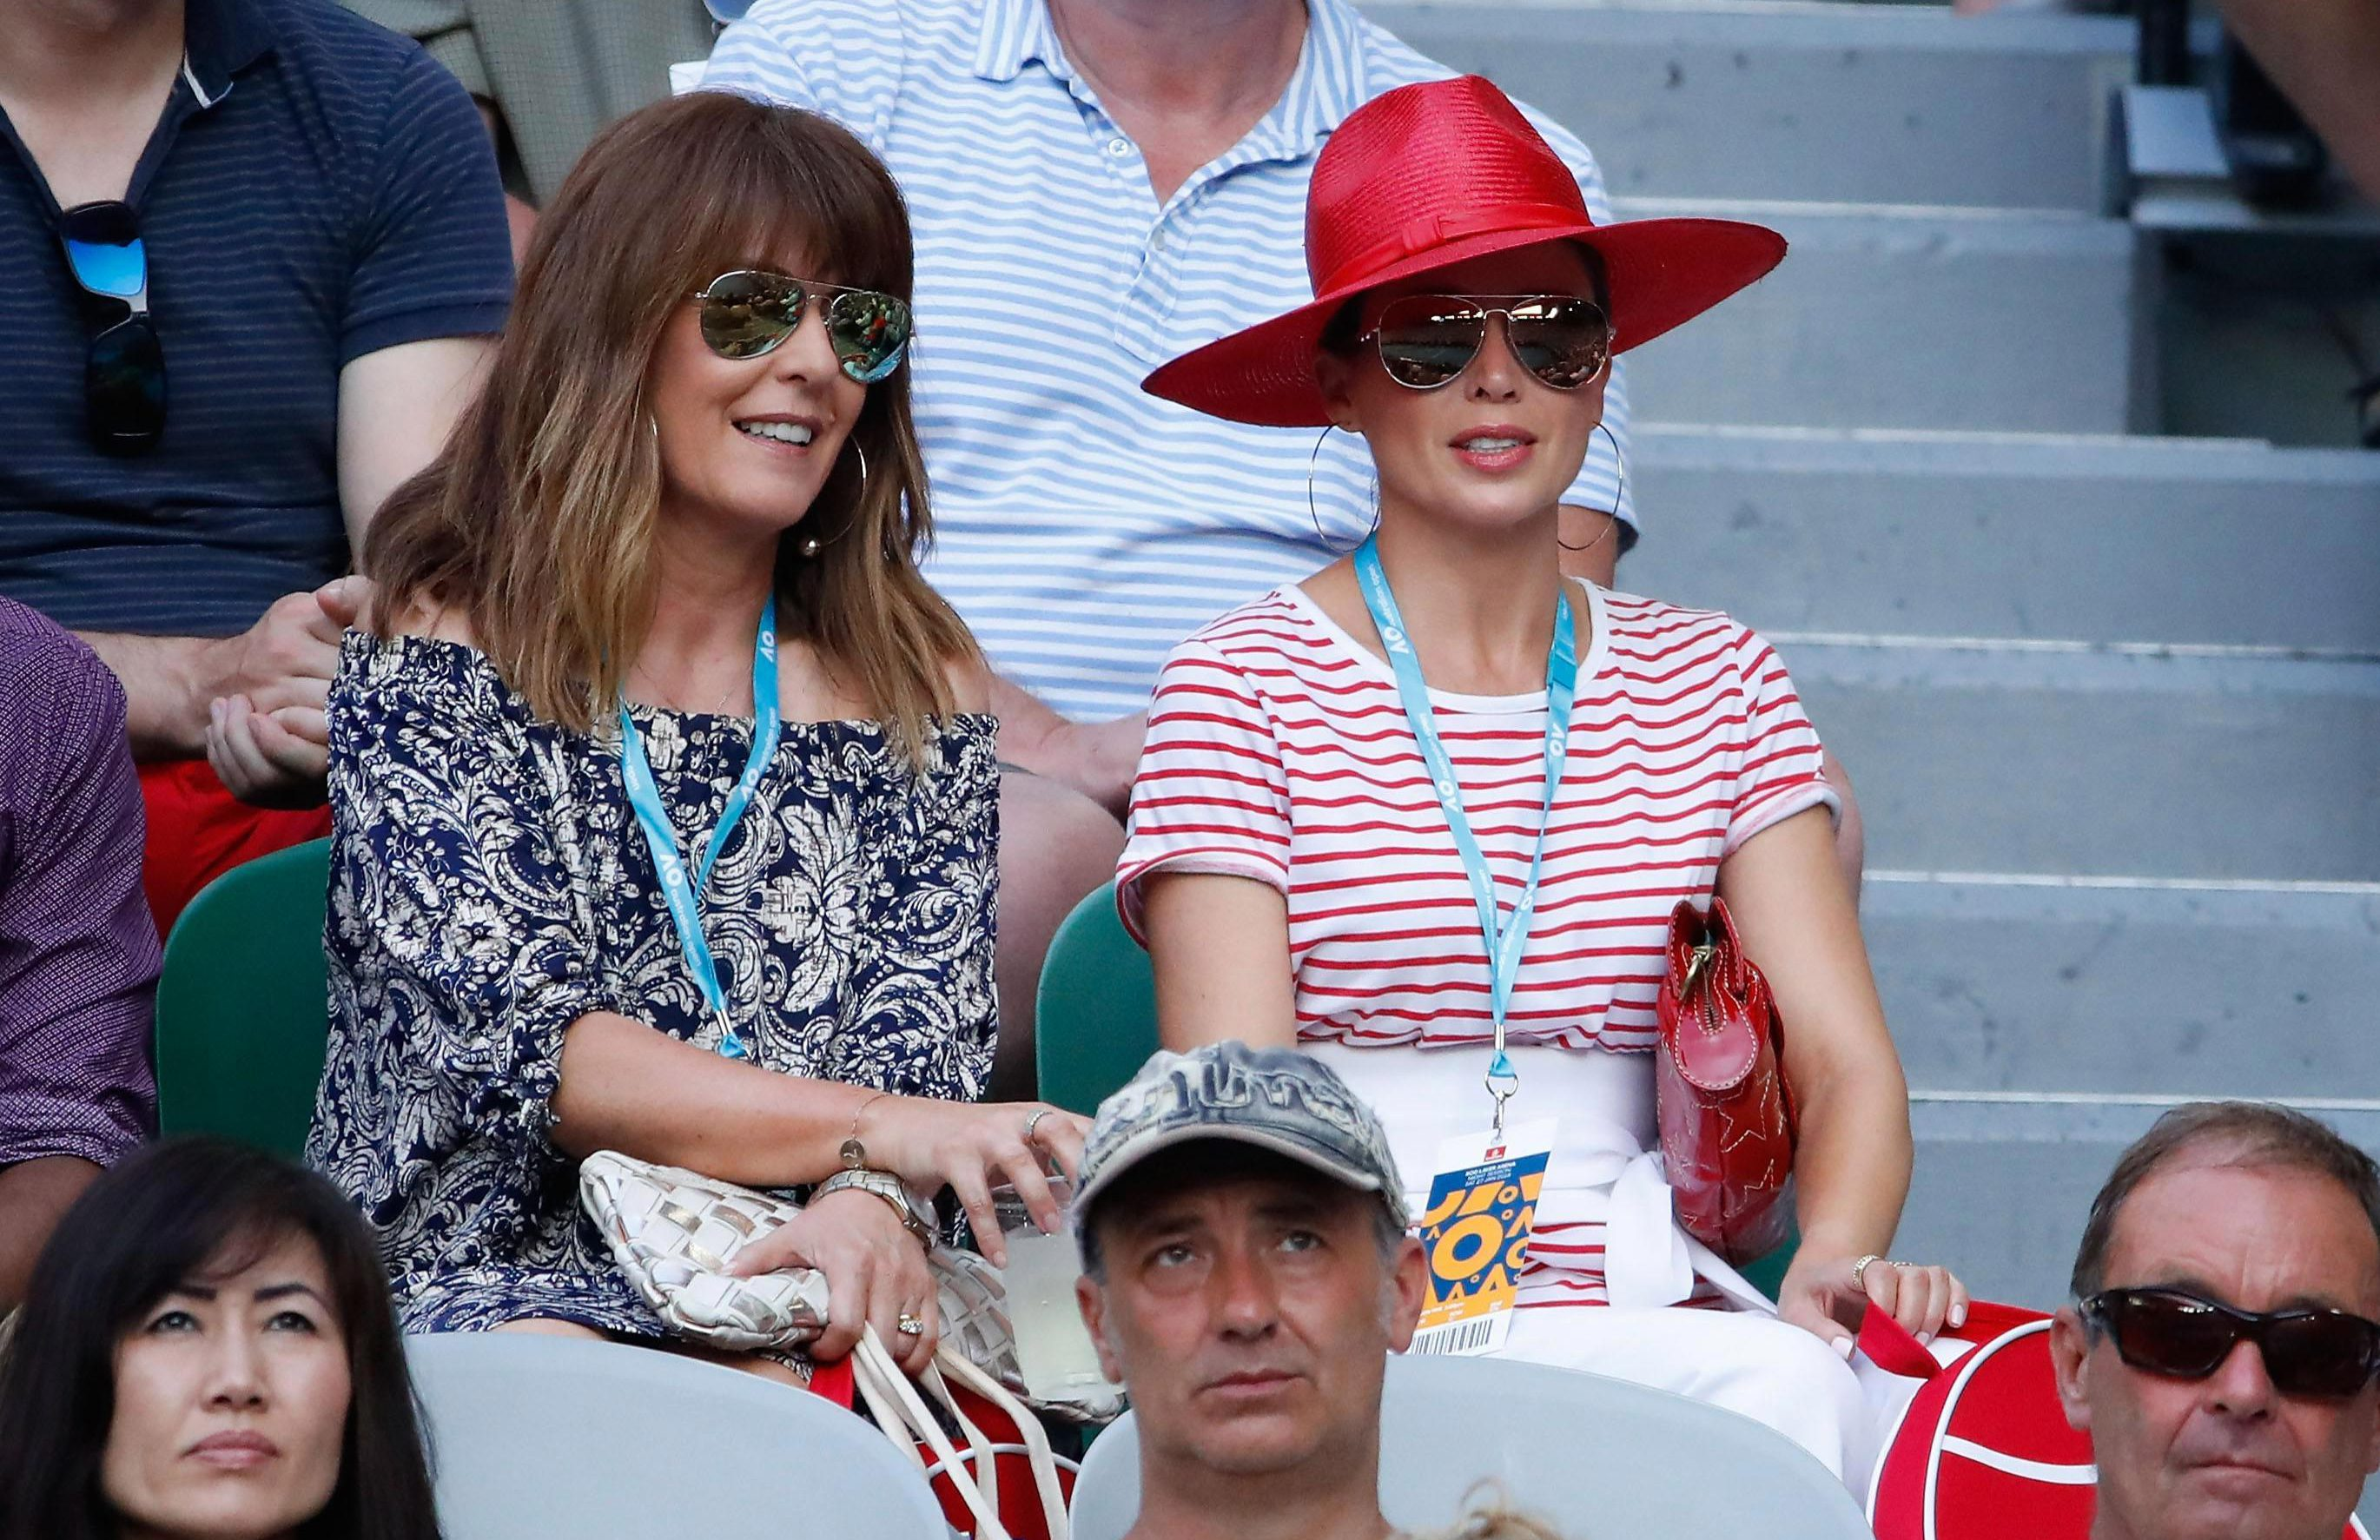 Dannii Minogue was in the crowd in a bright red hat as she watched Simona Halep take on Caroline Wozniacki